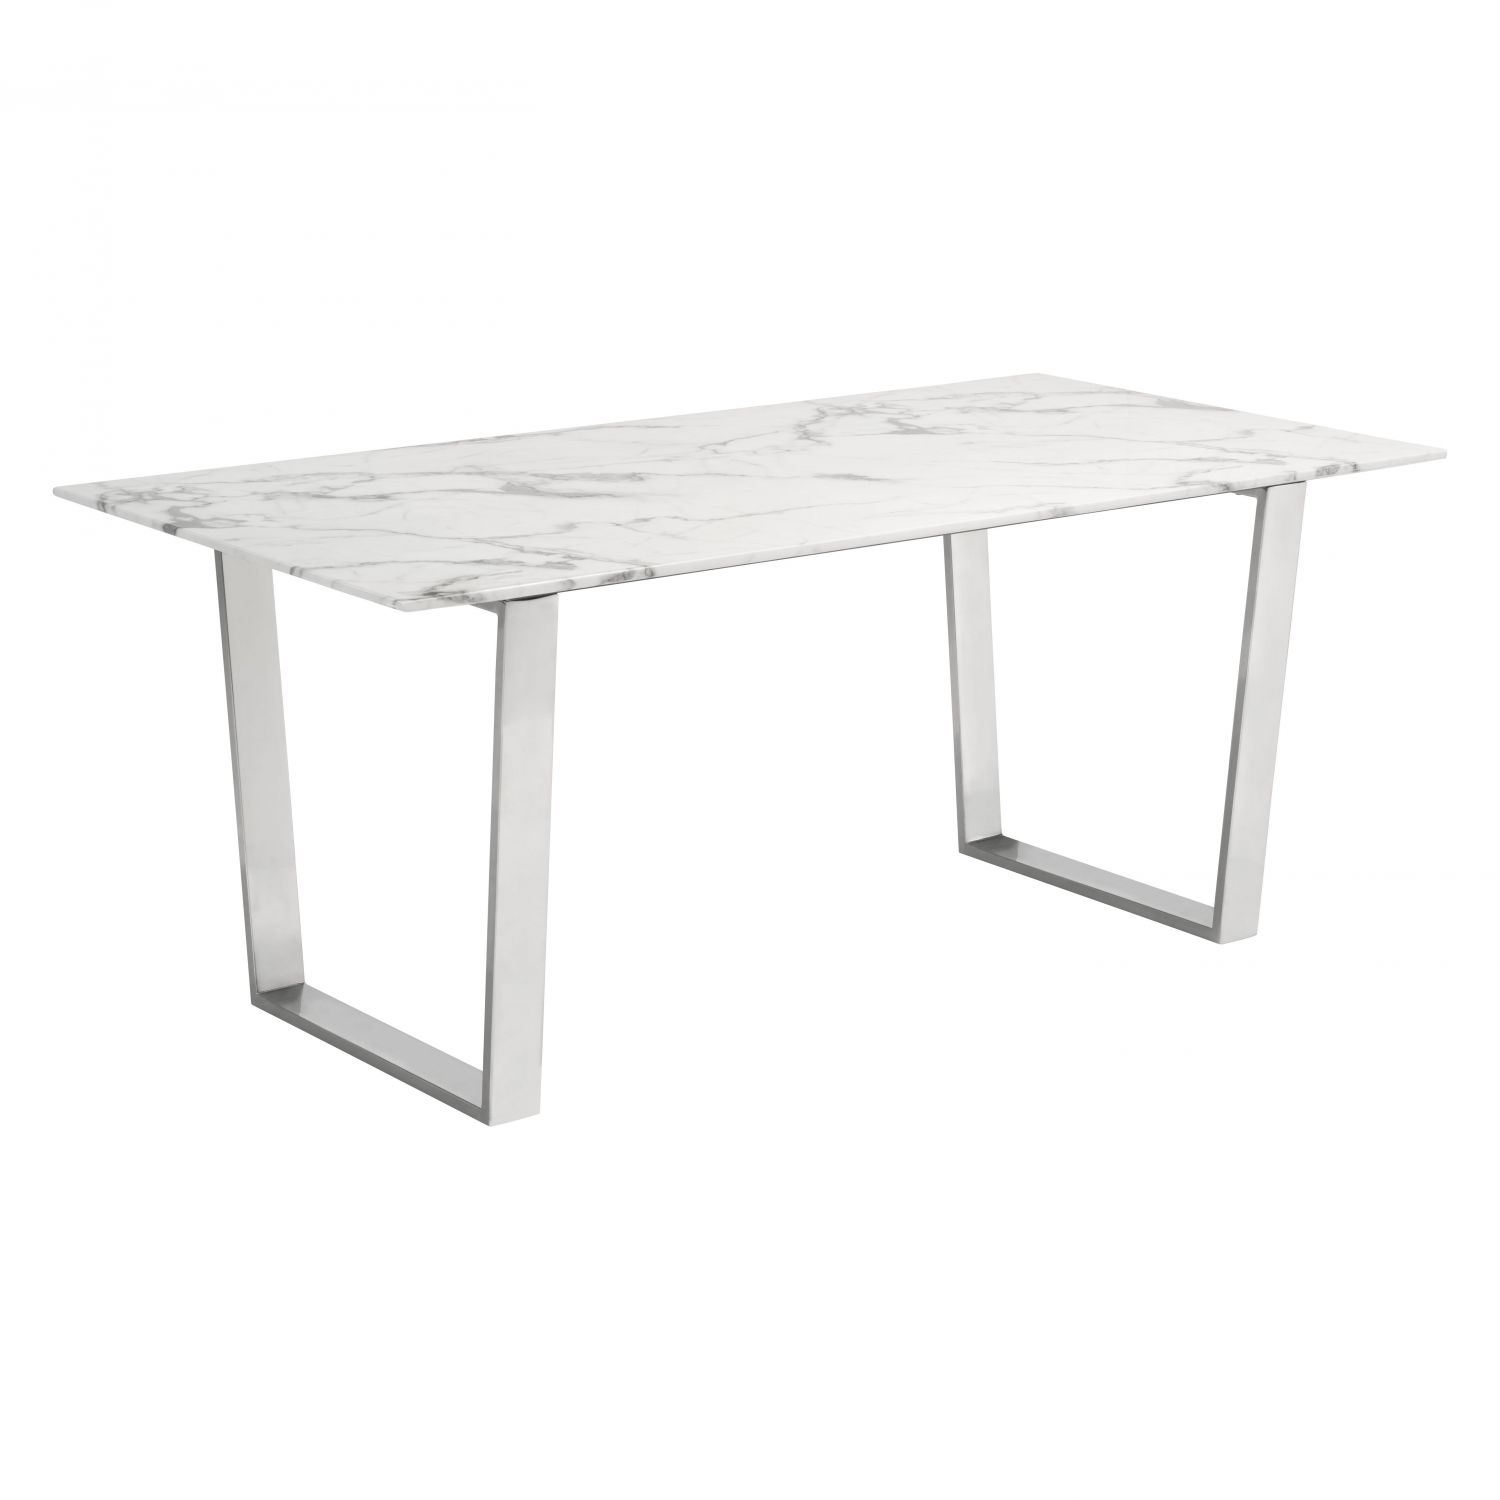 Atlas dining table stone brushed steel box 2 2 100707 for Stone dining table